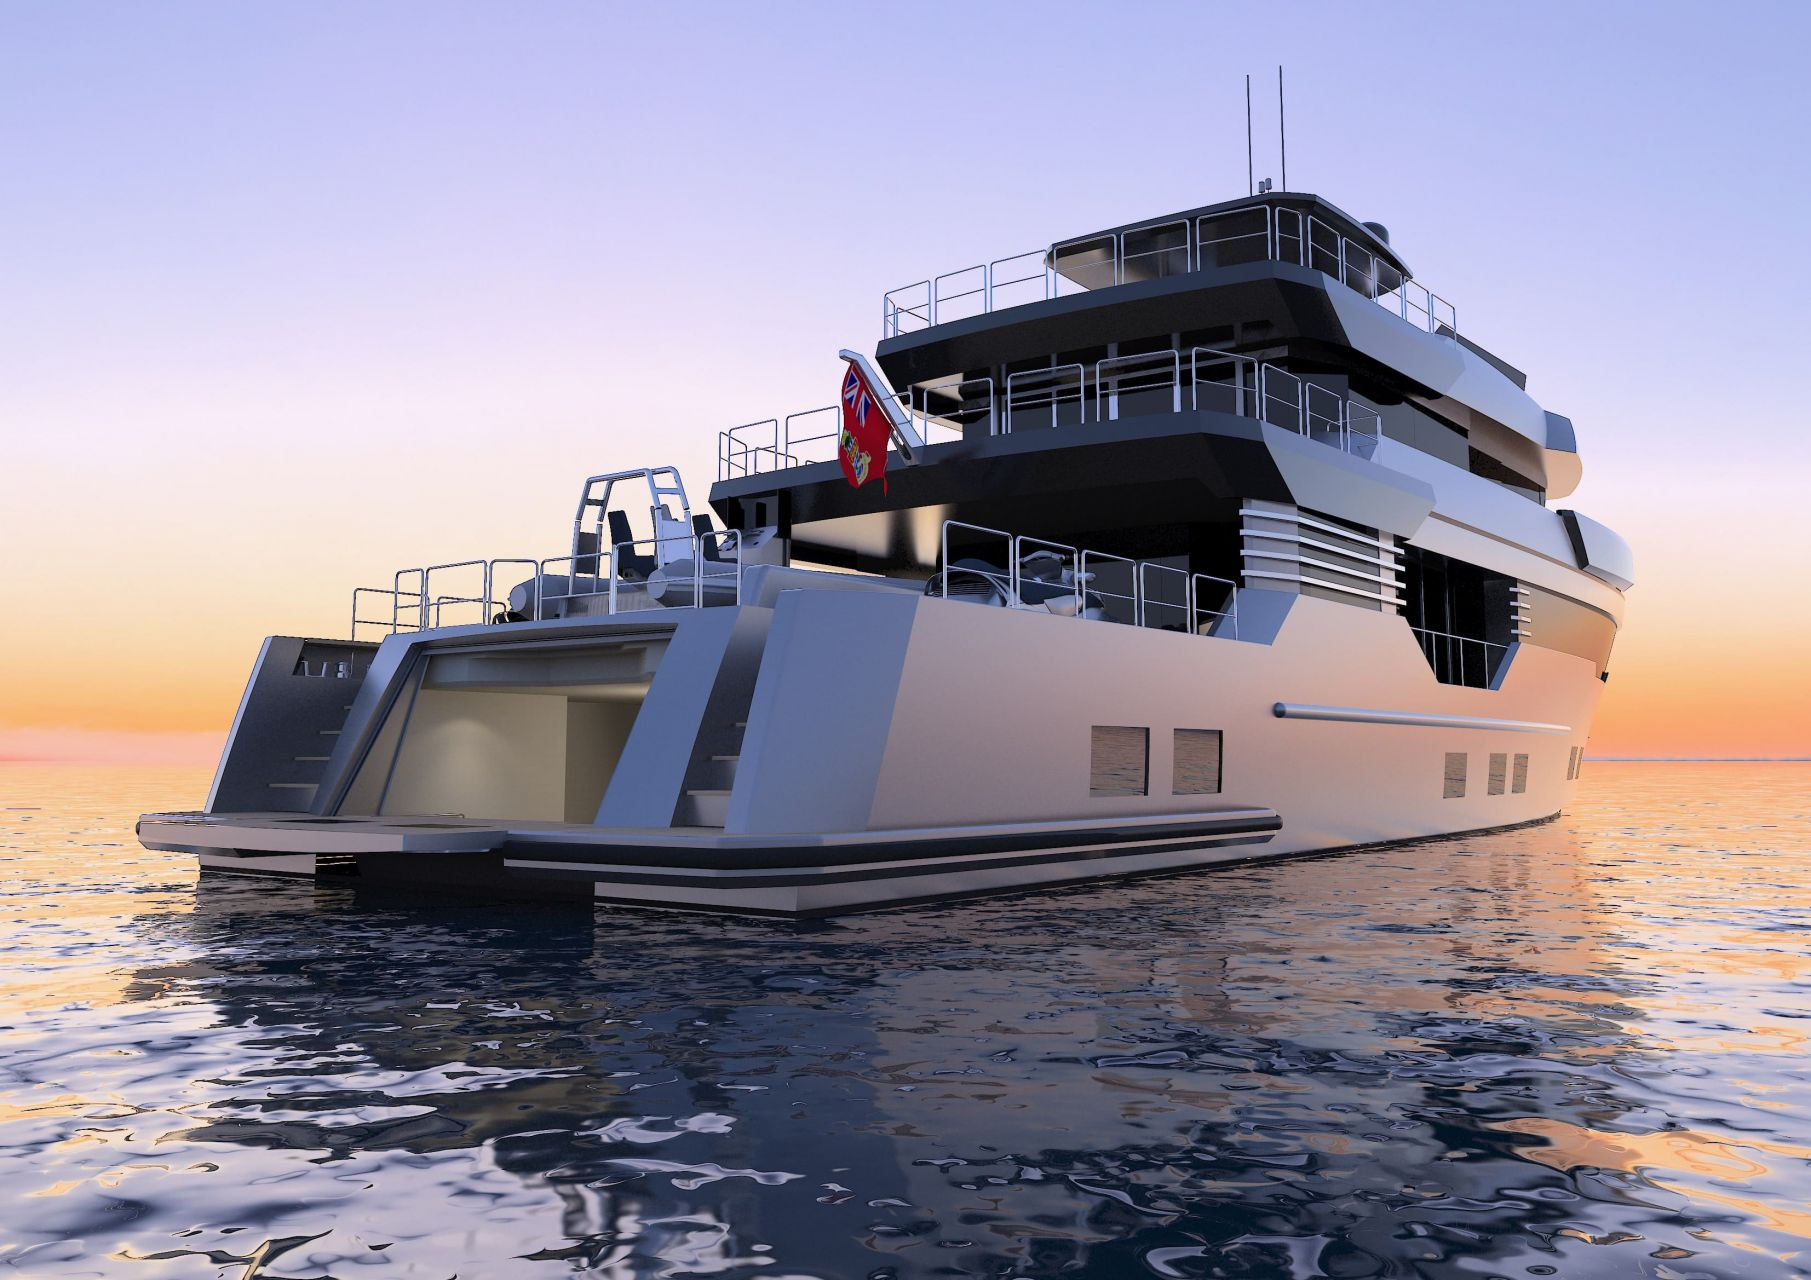 m/y pacifico 32 yacht for sale rear view